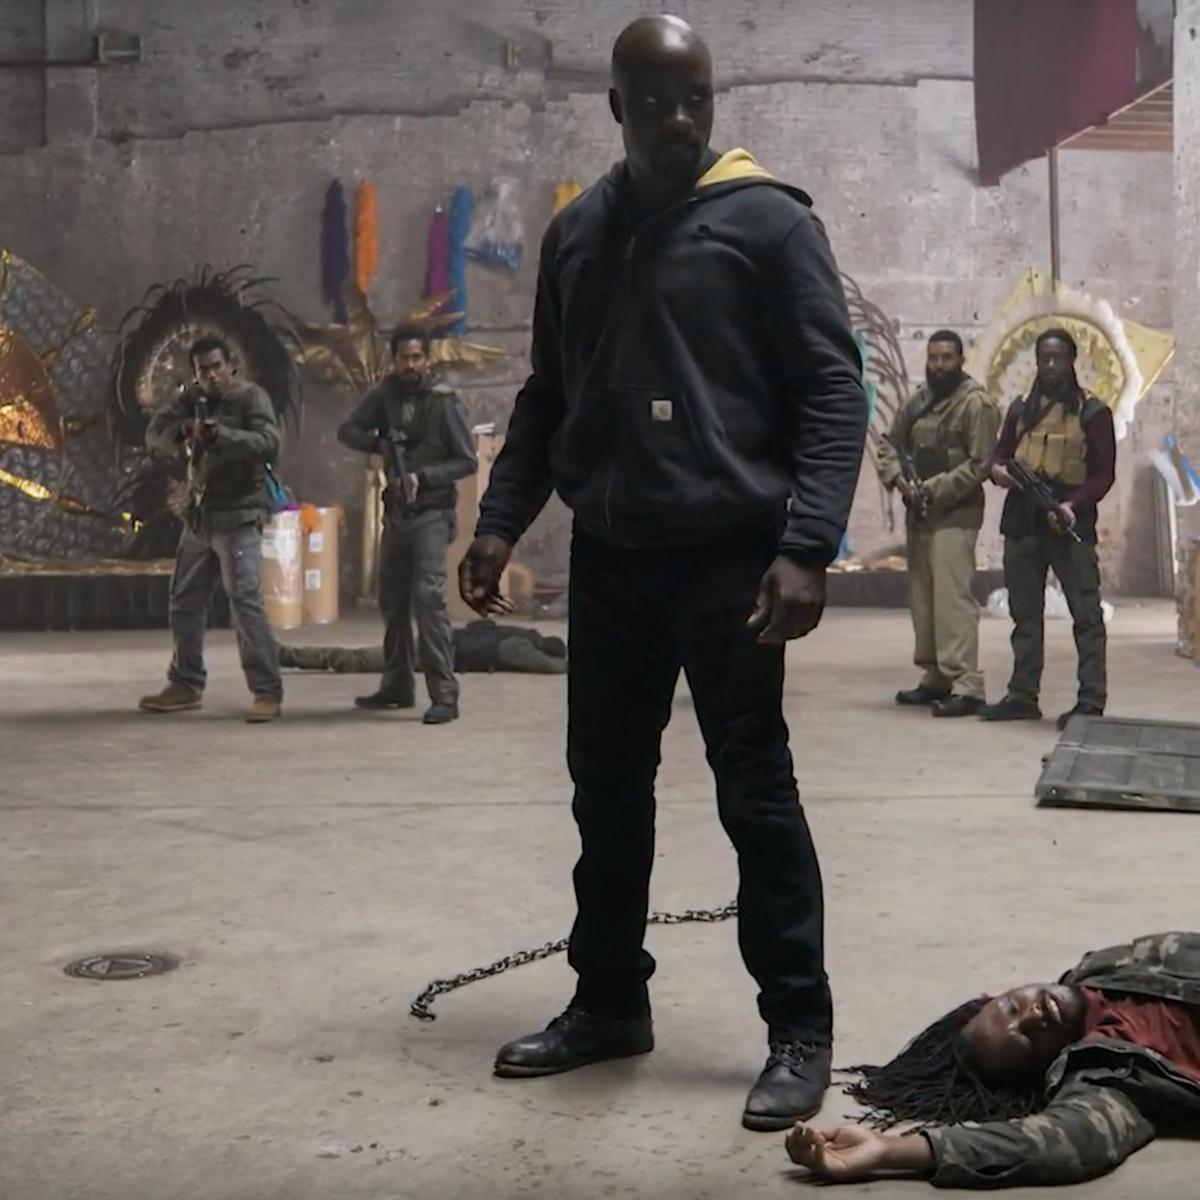 Luke Cage Cancelled: No Season 3 for Netflix Marvel Drama